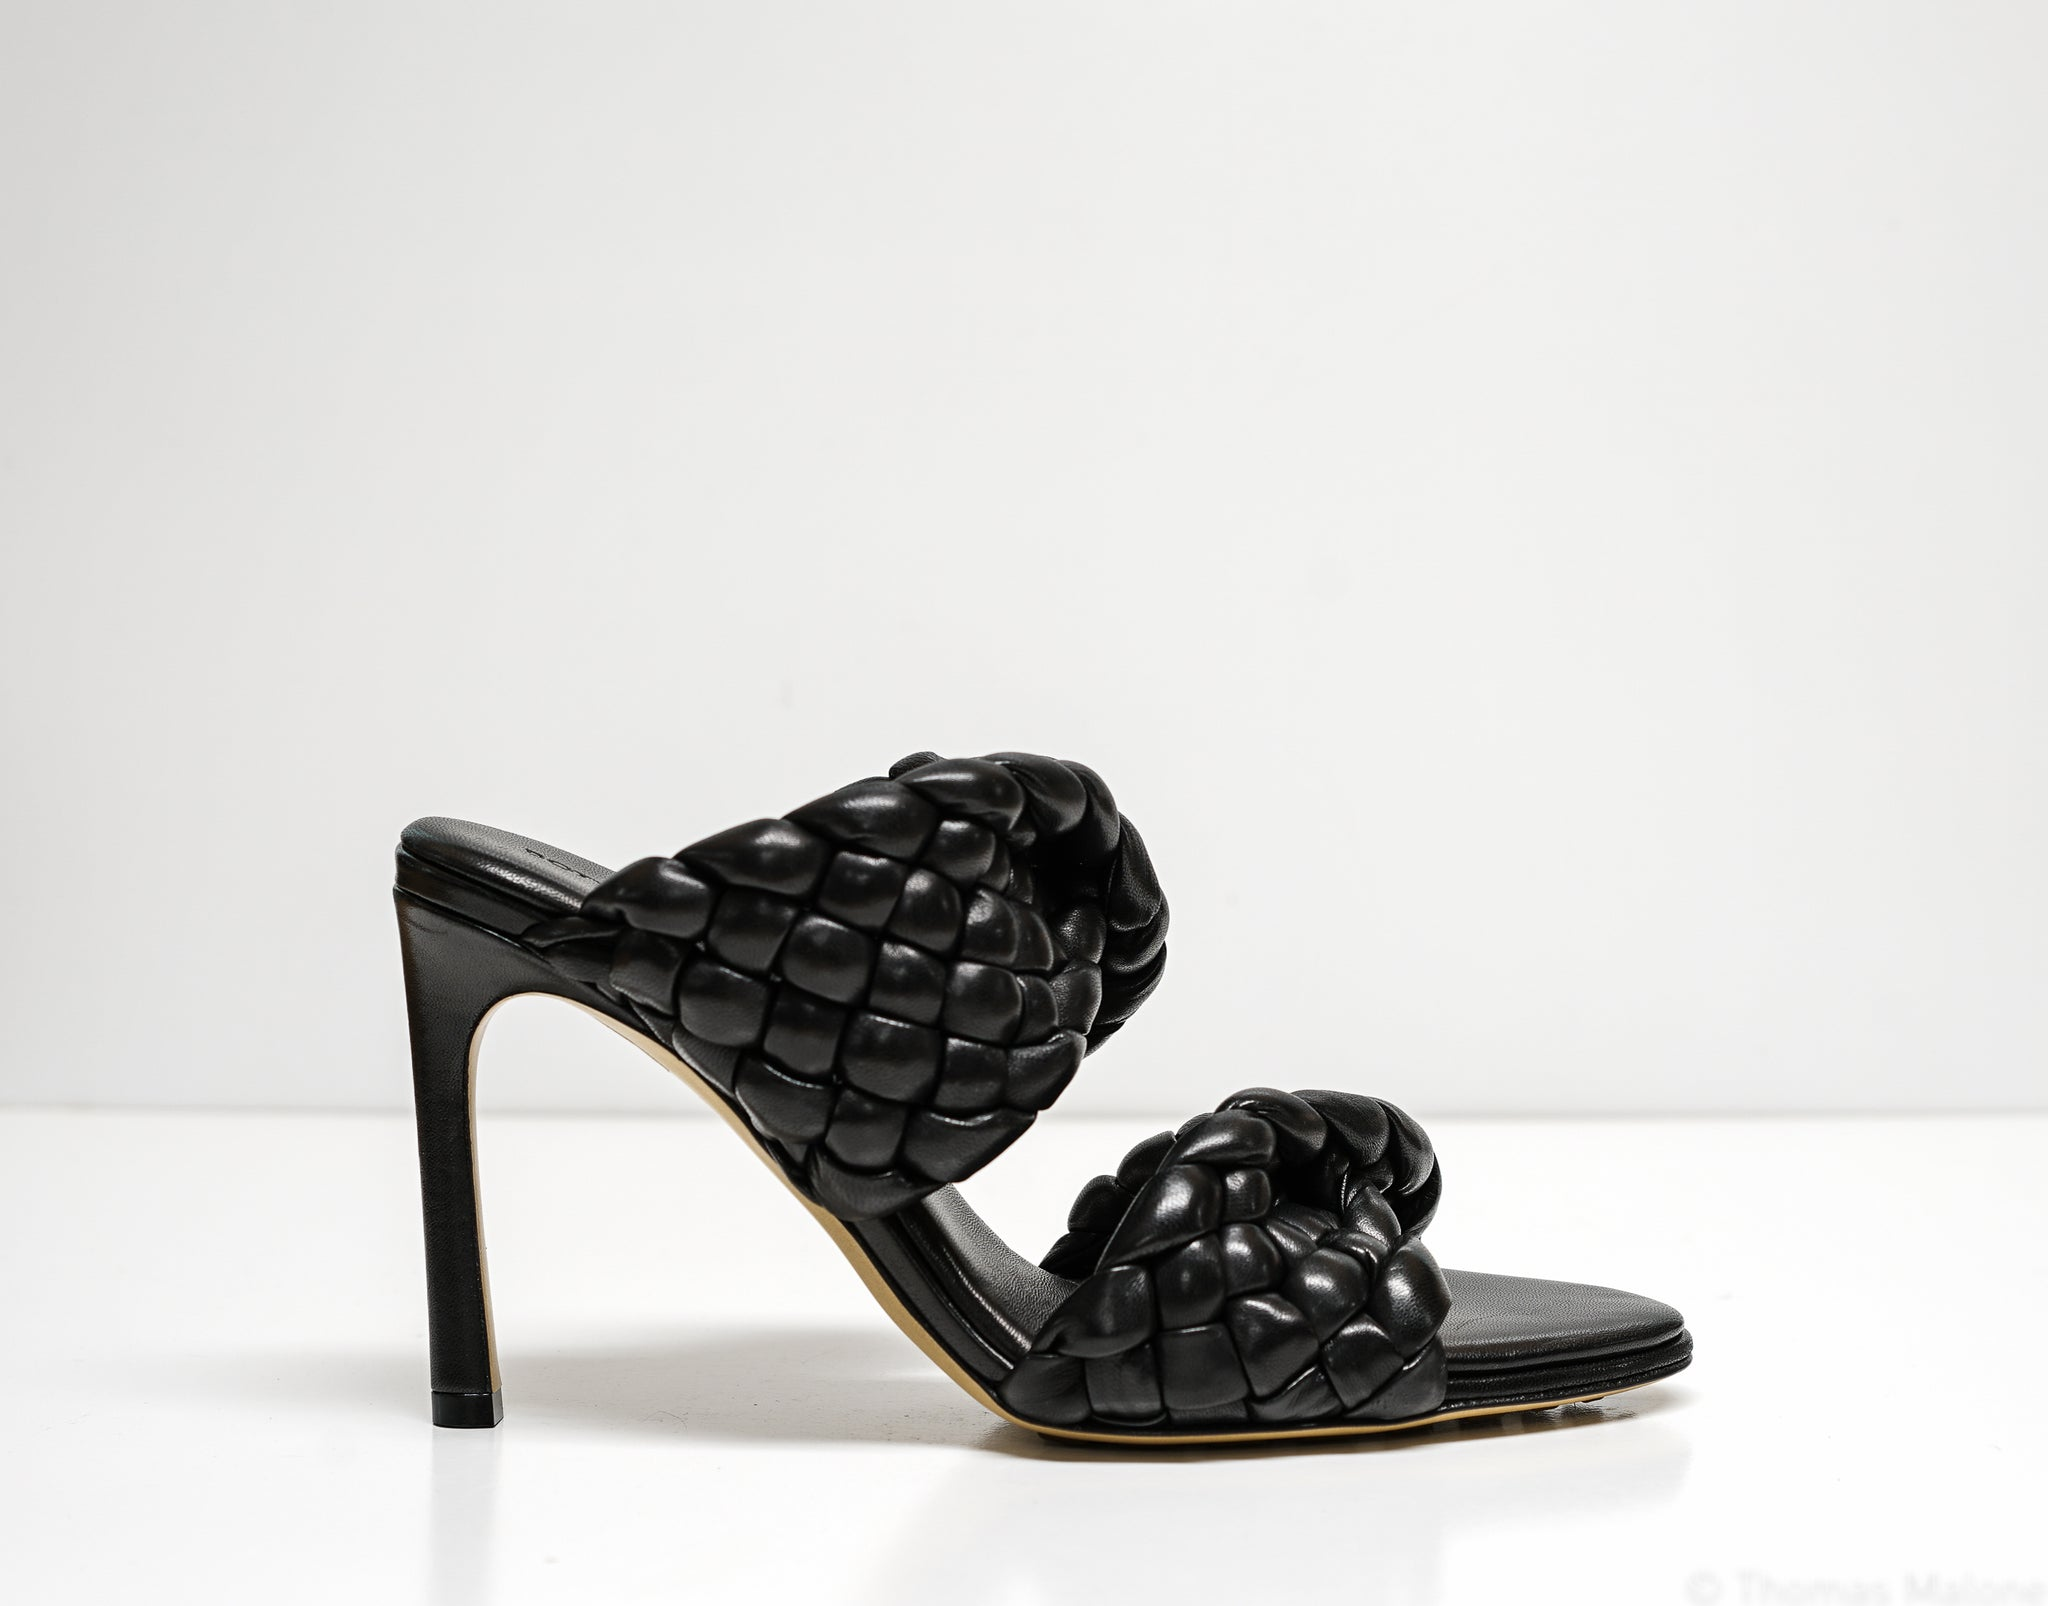 Bottega Veneta Women's Black Leather Curve Sandals 618757